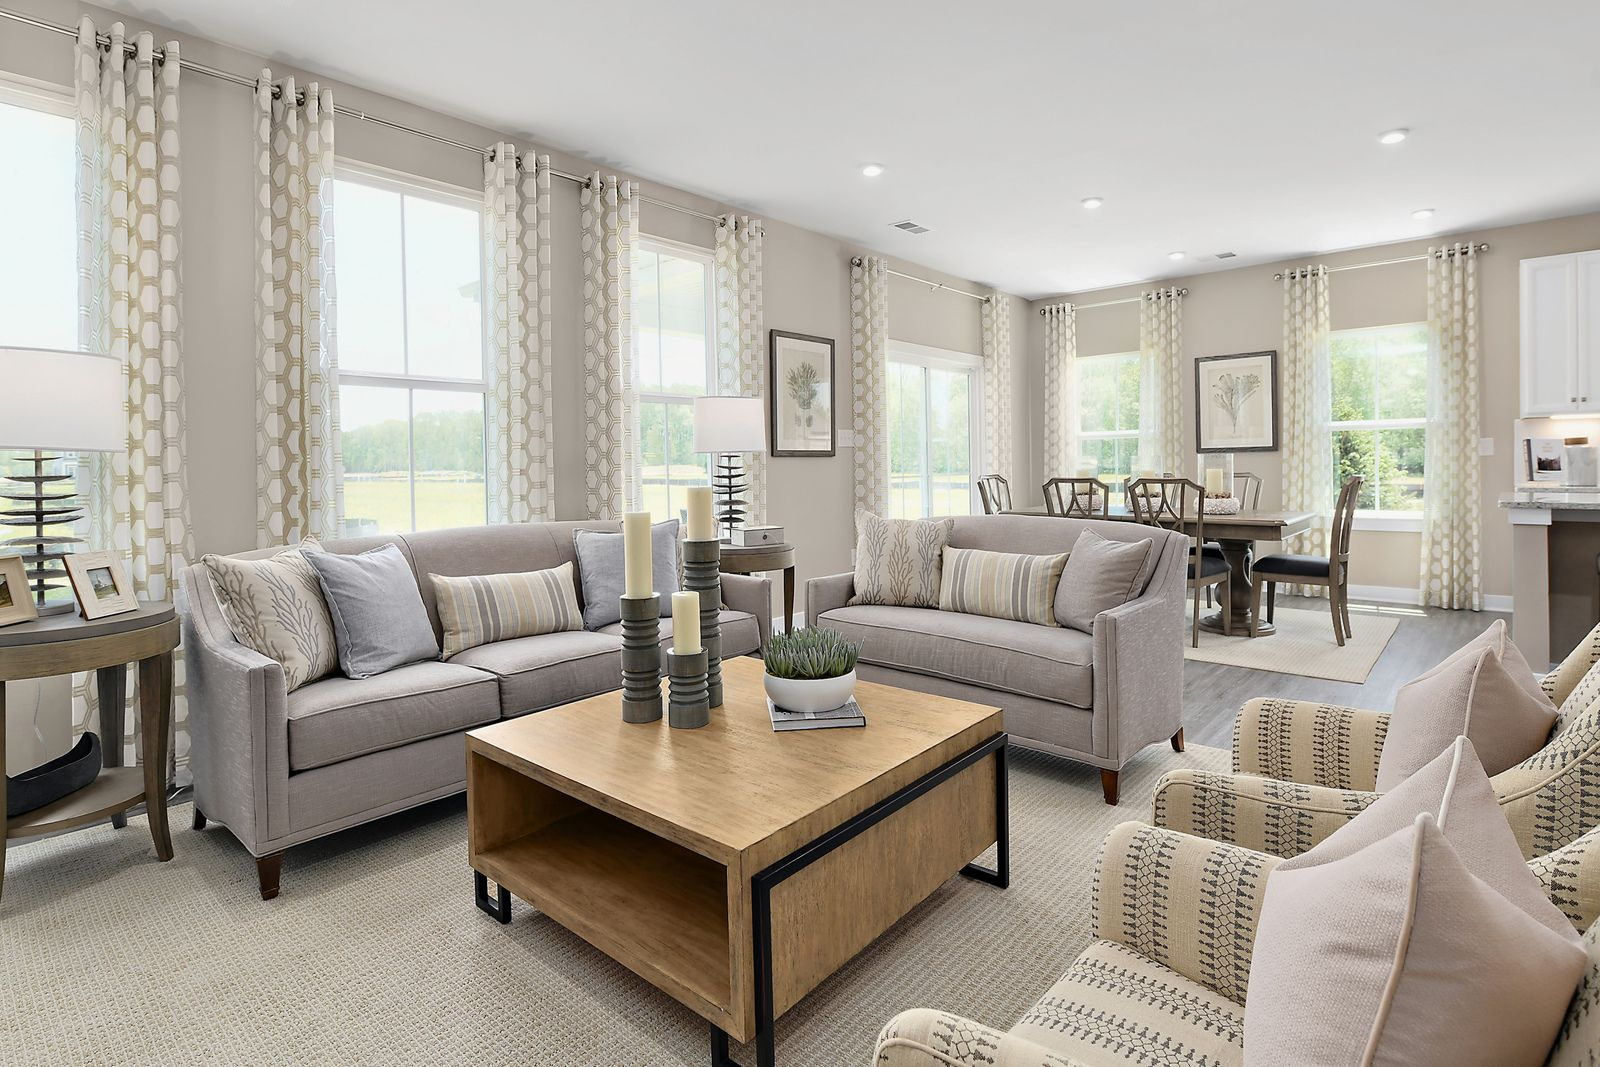 Living Area featured in the Ashbrooke By Ryan Homes in Washington, MD